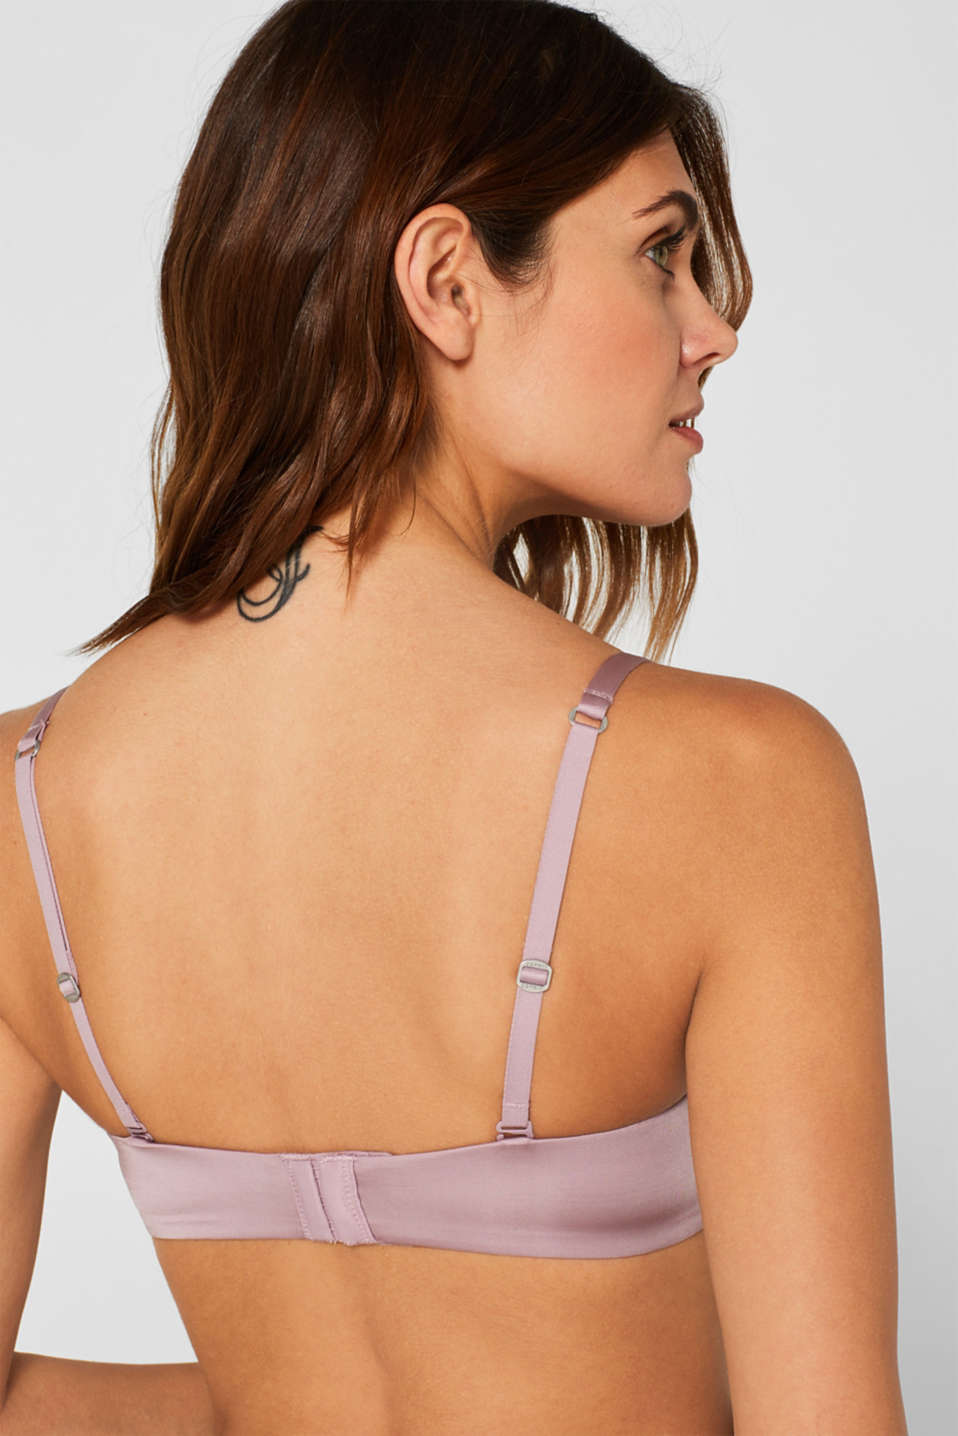 Padded underwire bra with detachable straps, MAUVE, detail image number 4